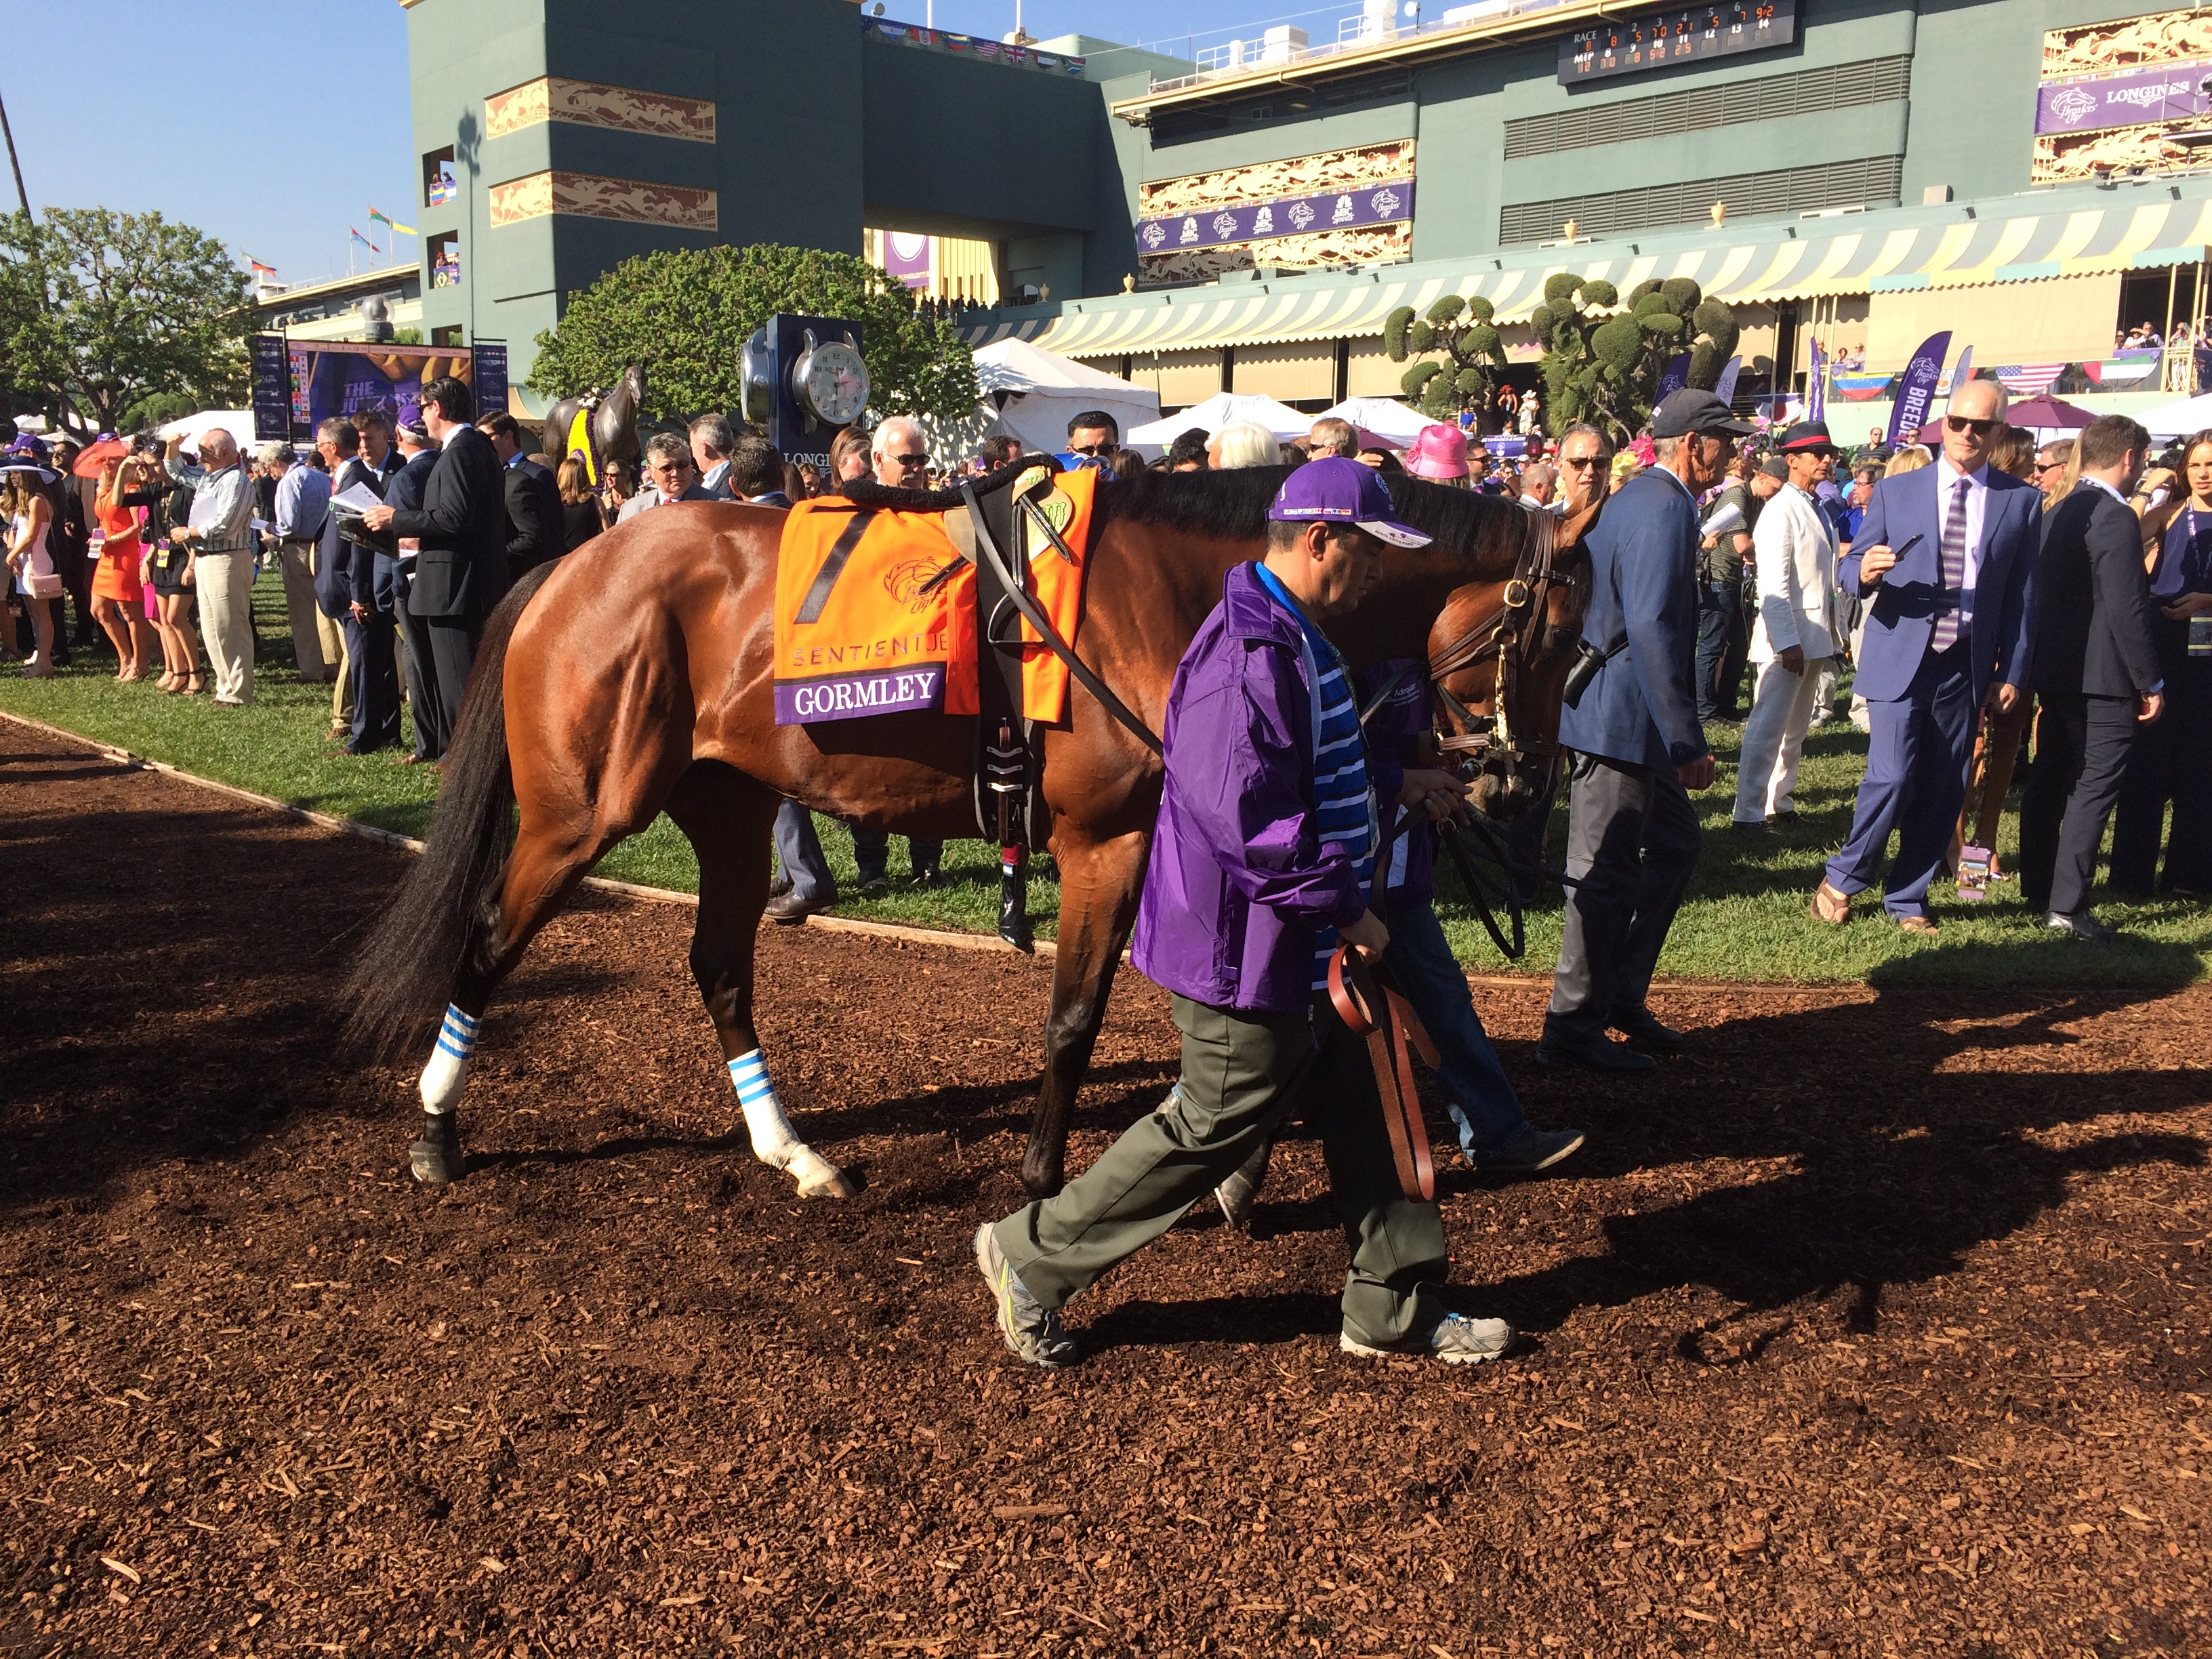 Gormley is the  9-2 second choice in the Santa Anita Derby on Saturday. Photo Credit: G Kershner